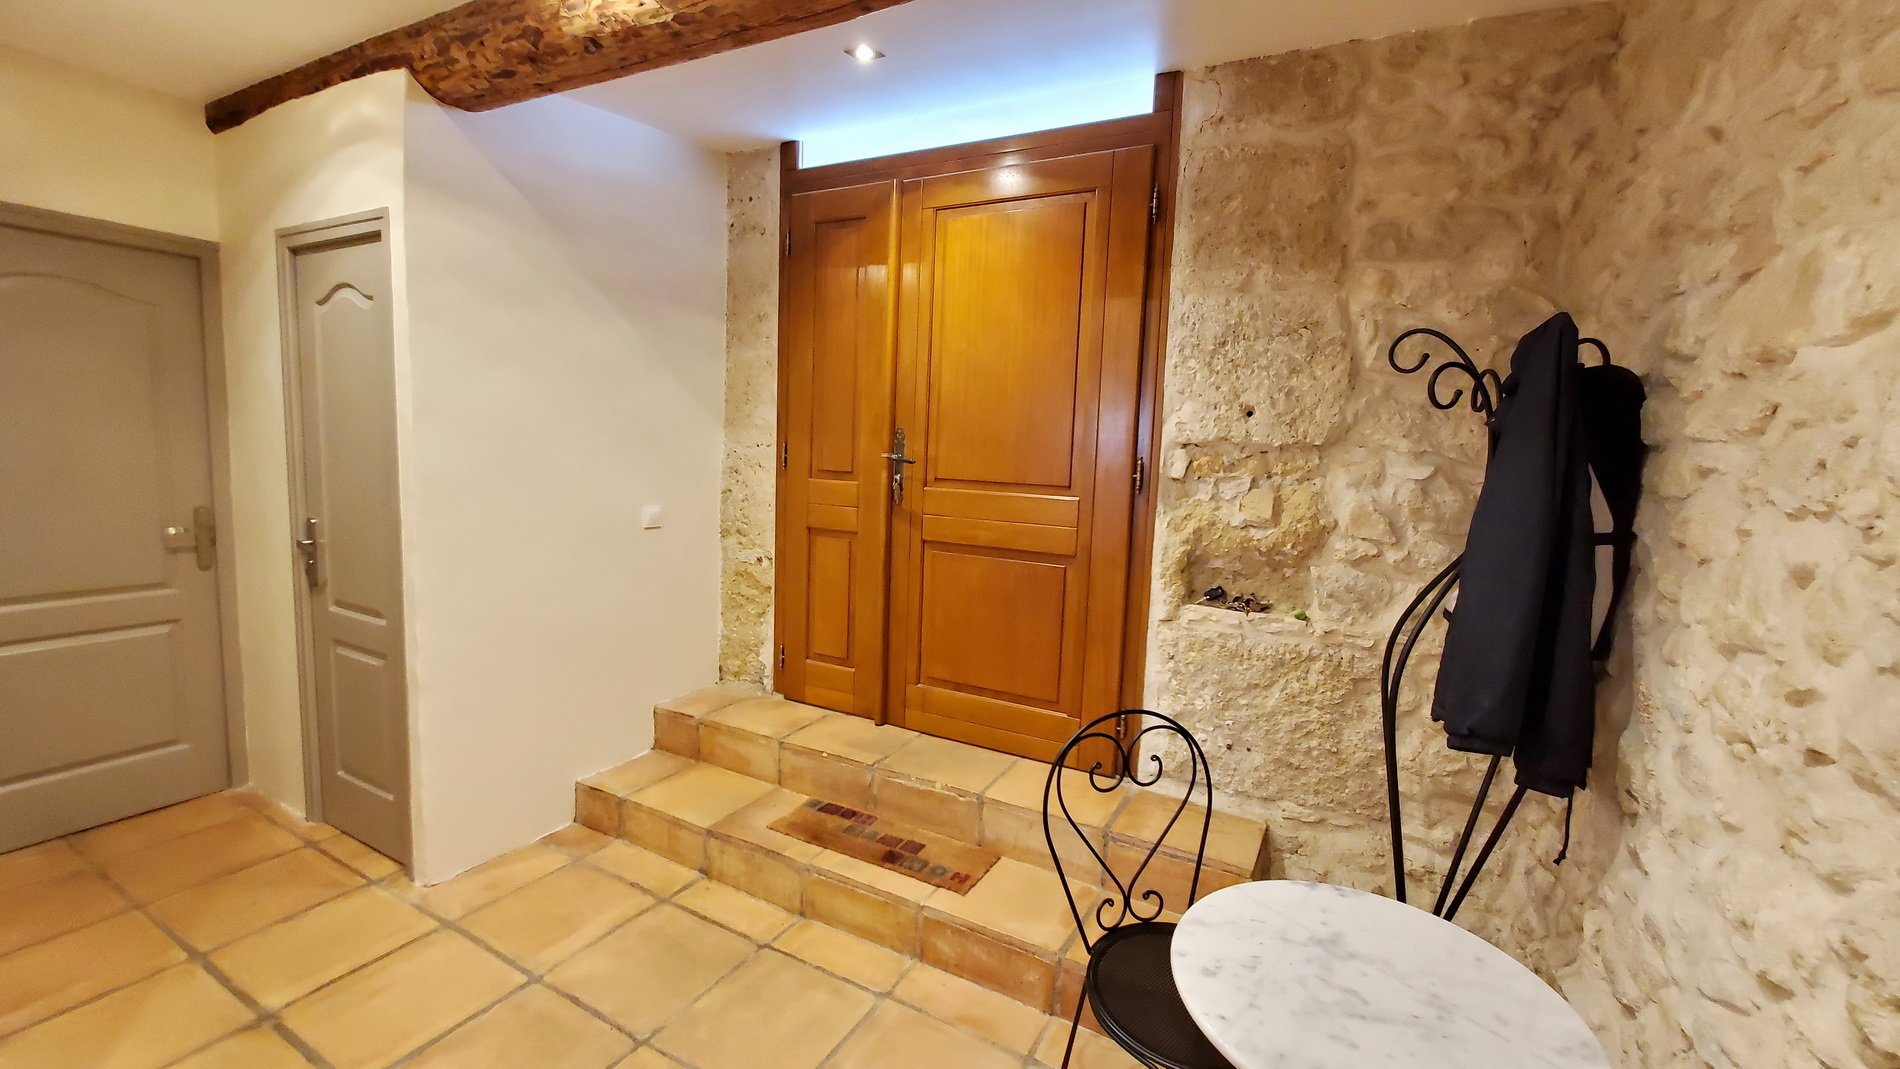 Beautiful stone property with garage and small garden